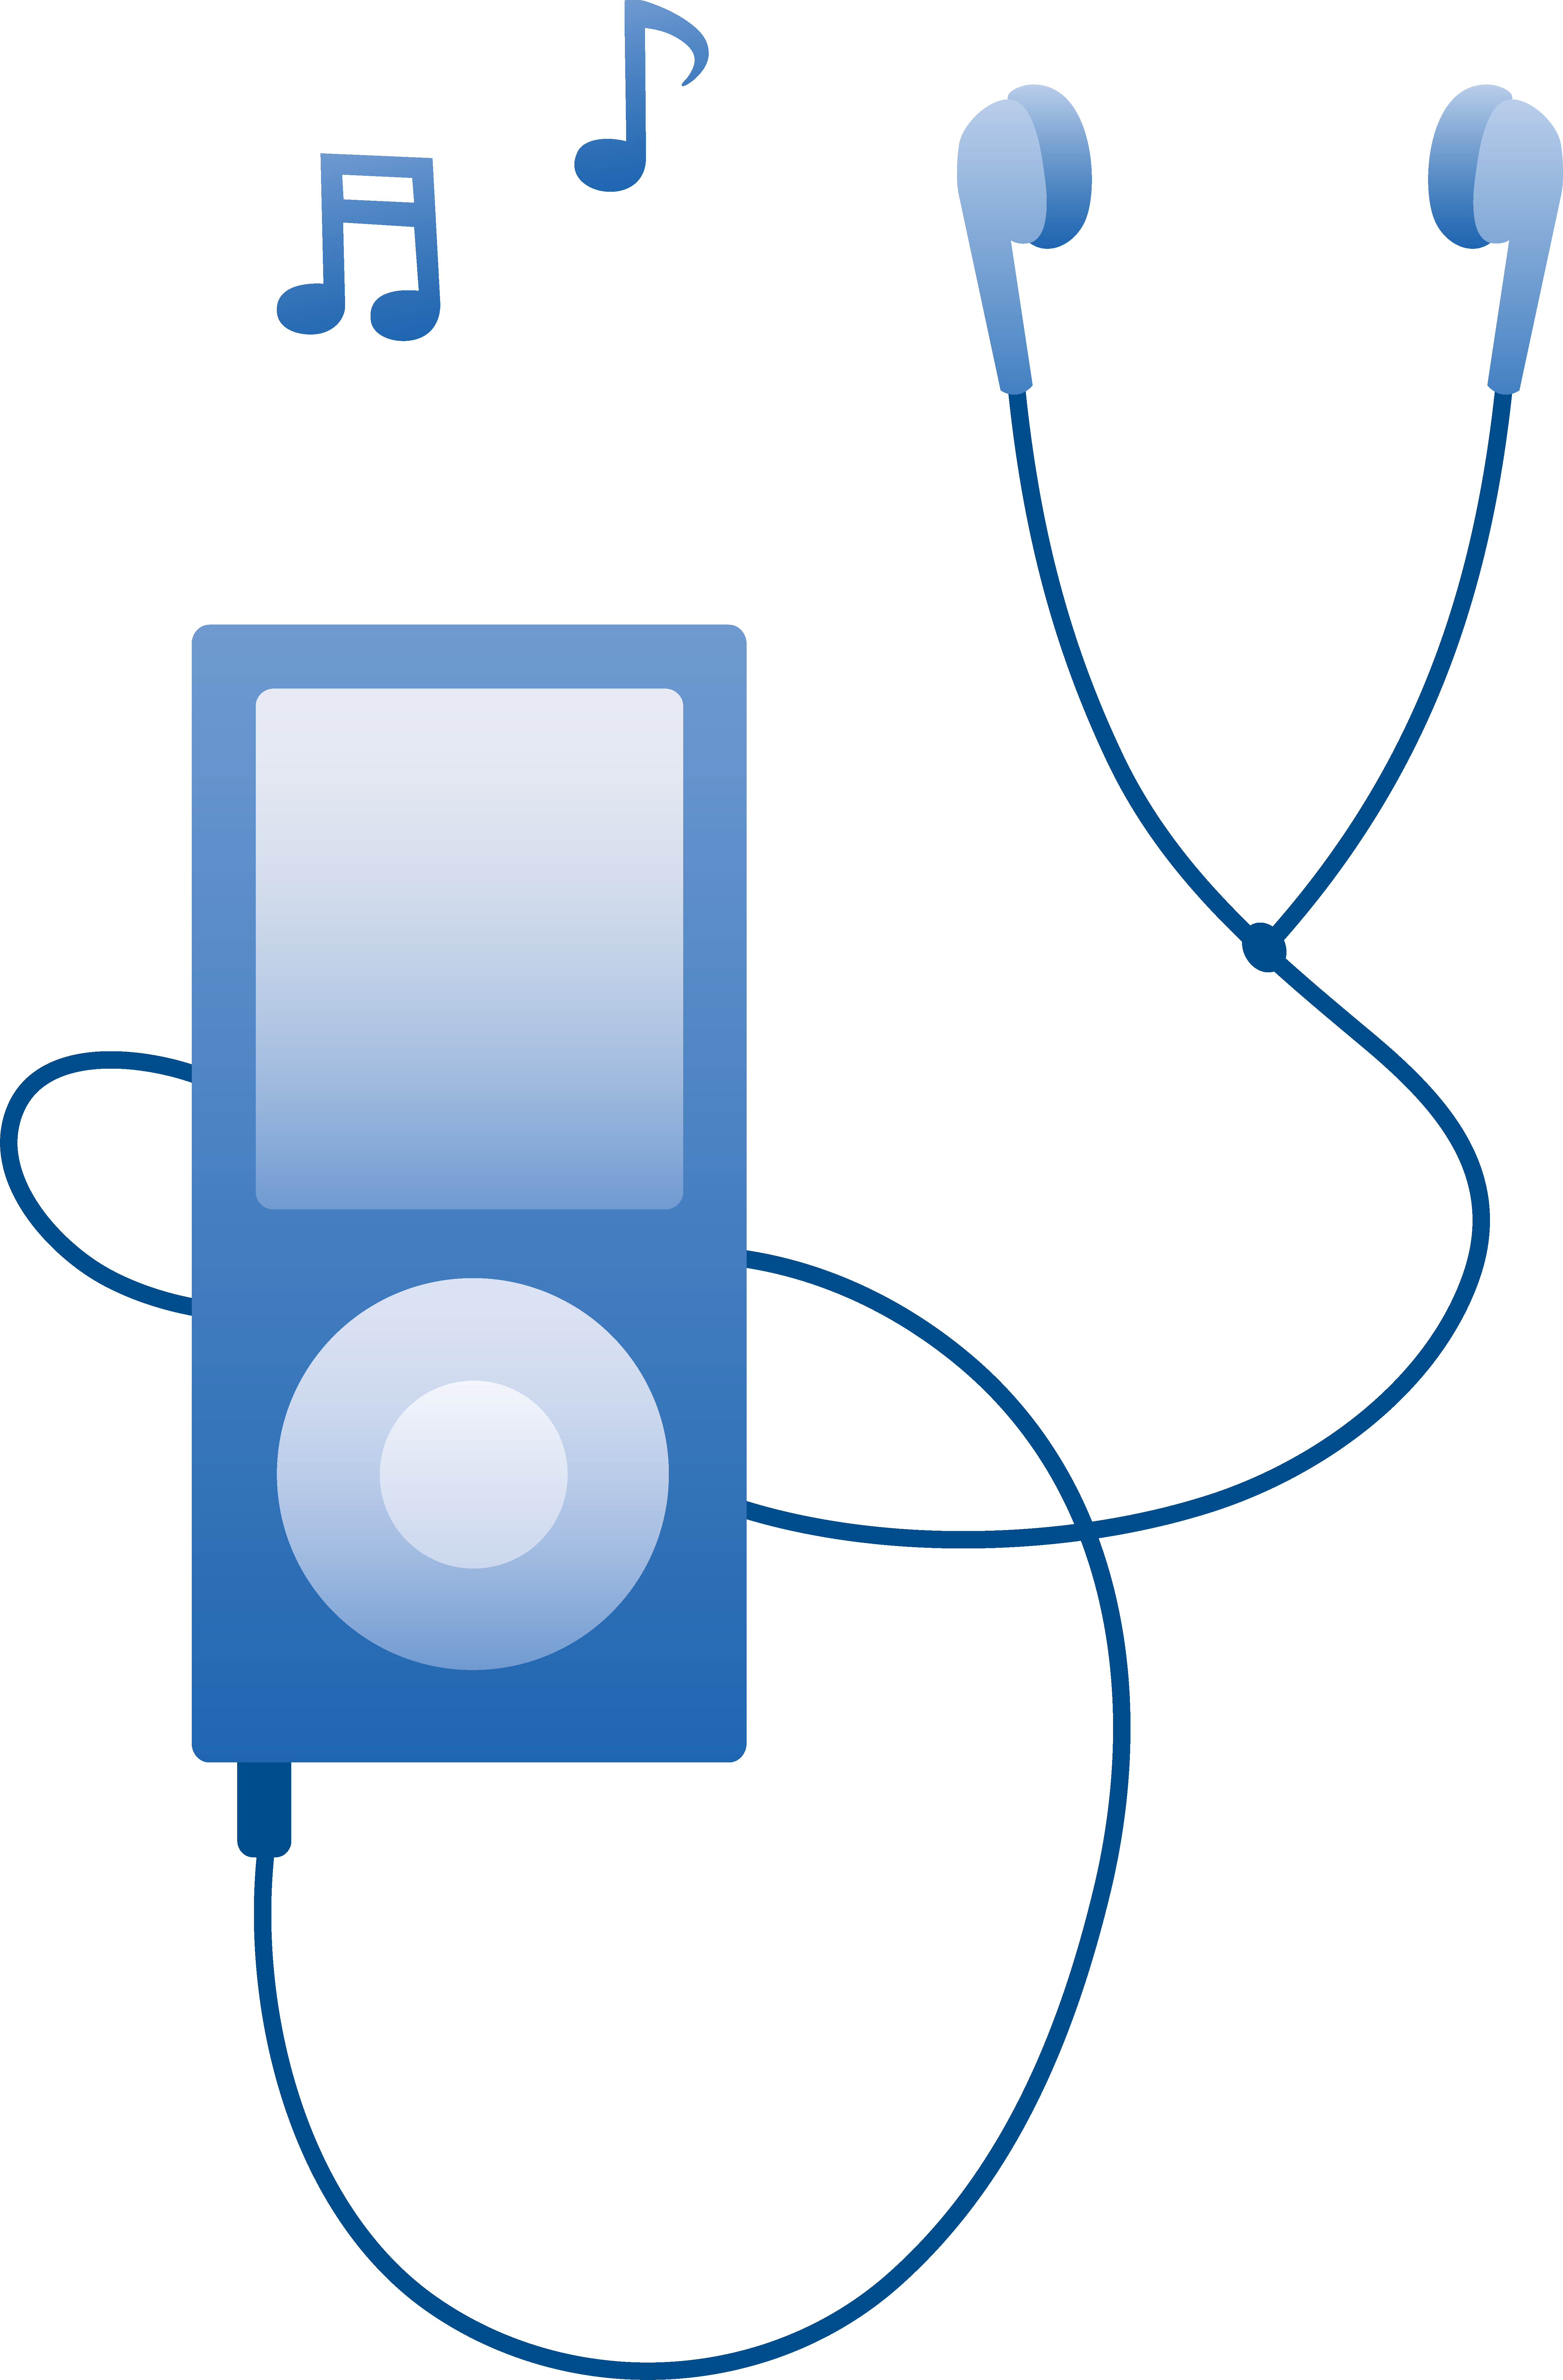 5200x7919 Ipod With Earbuds Png Transparent Ipod With Earbuds.png Images